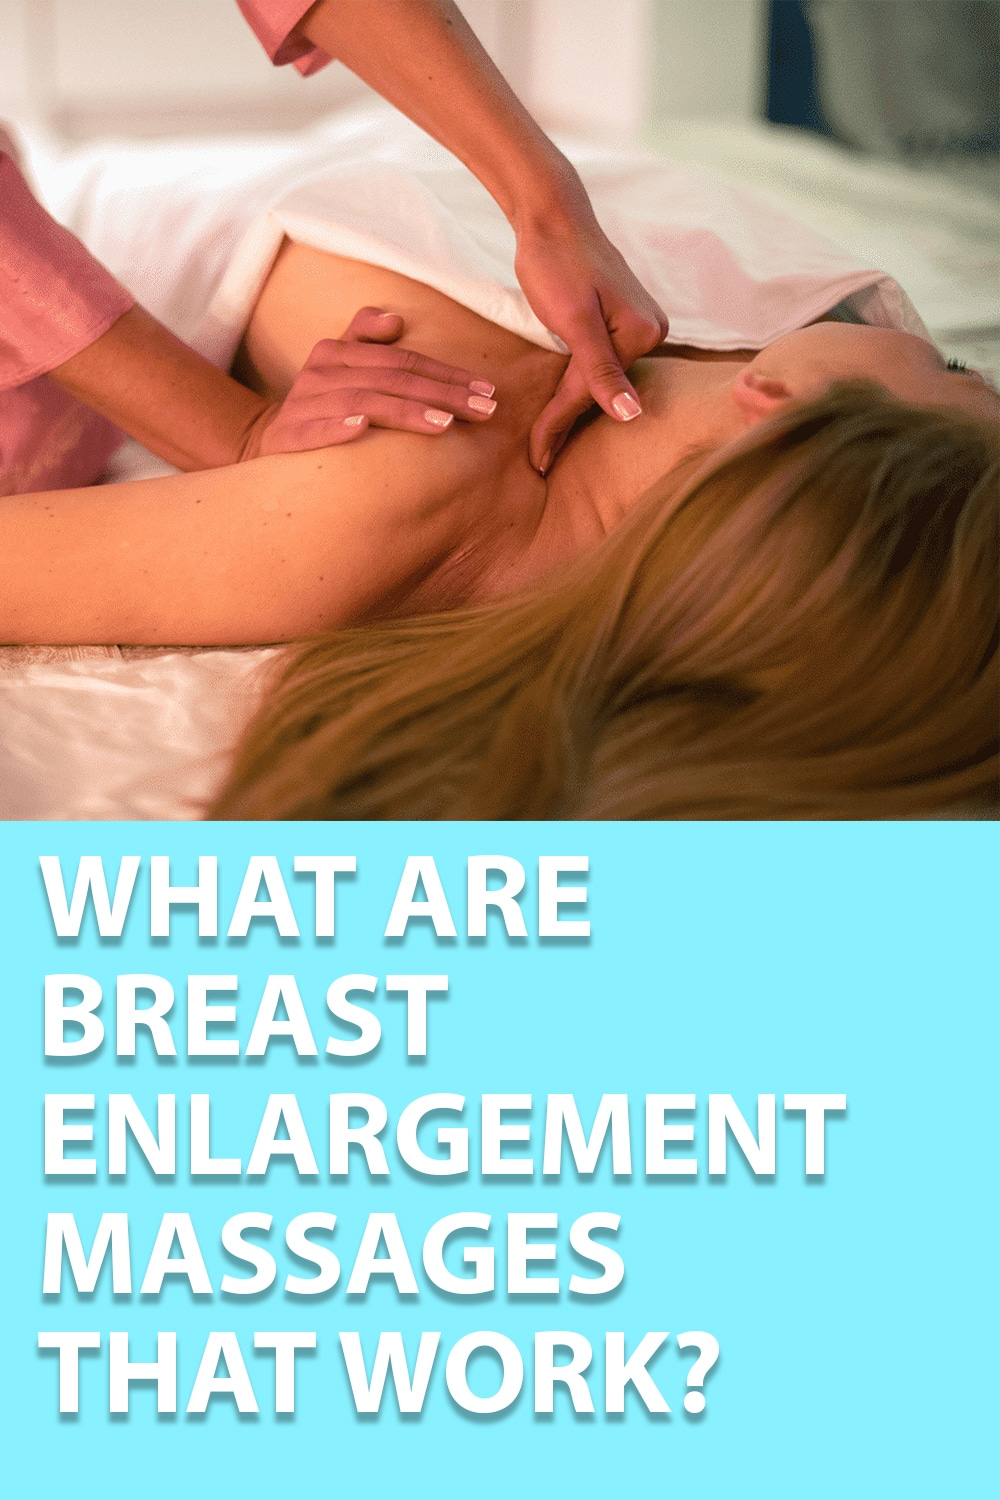 Fast Results From Breast Enlargement Massages Revealed